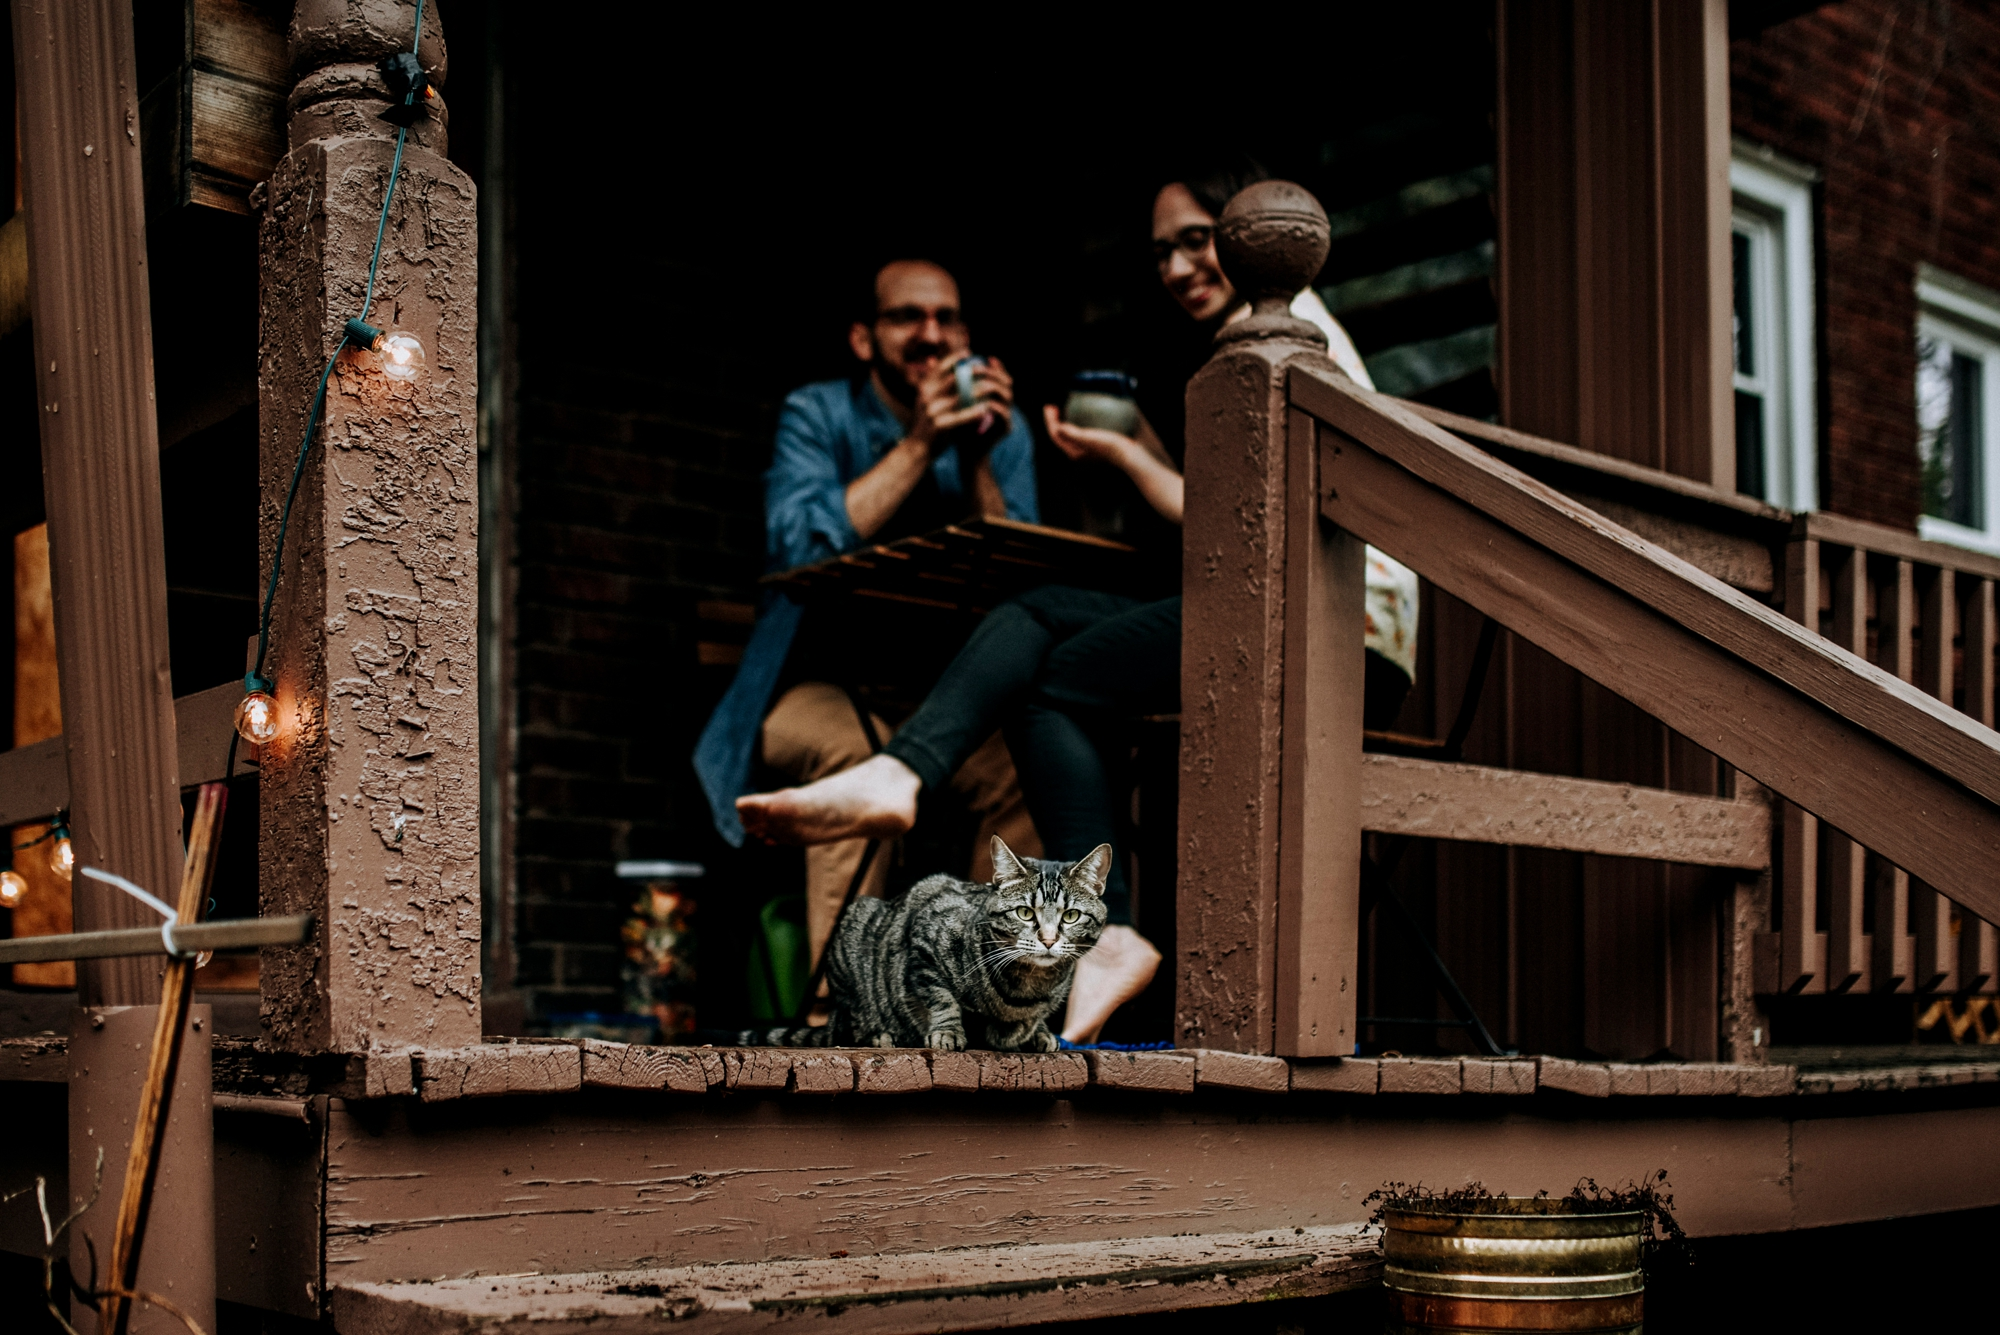 035-R+S_engagement-session-pittsburgh.jpg